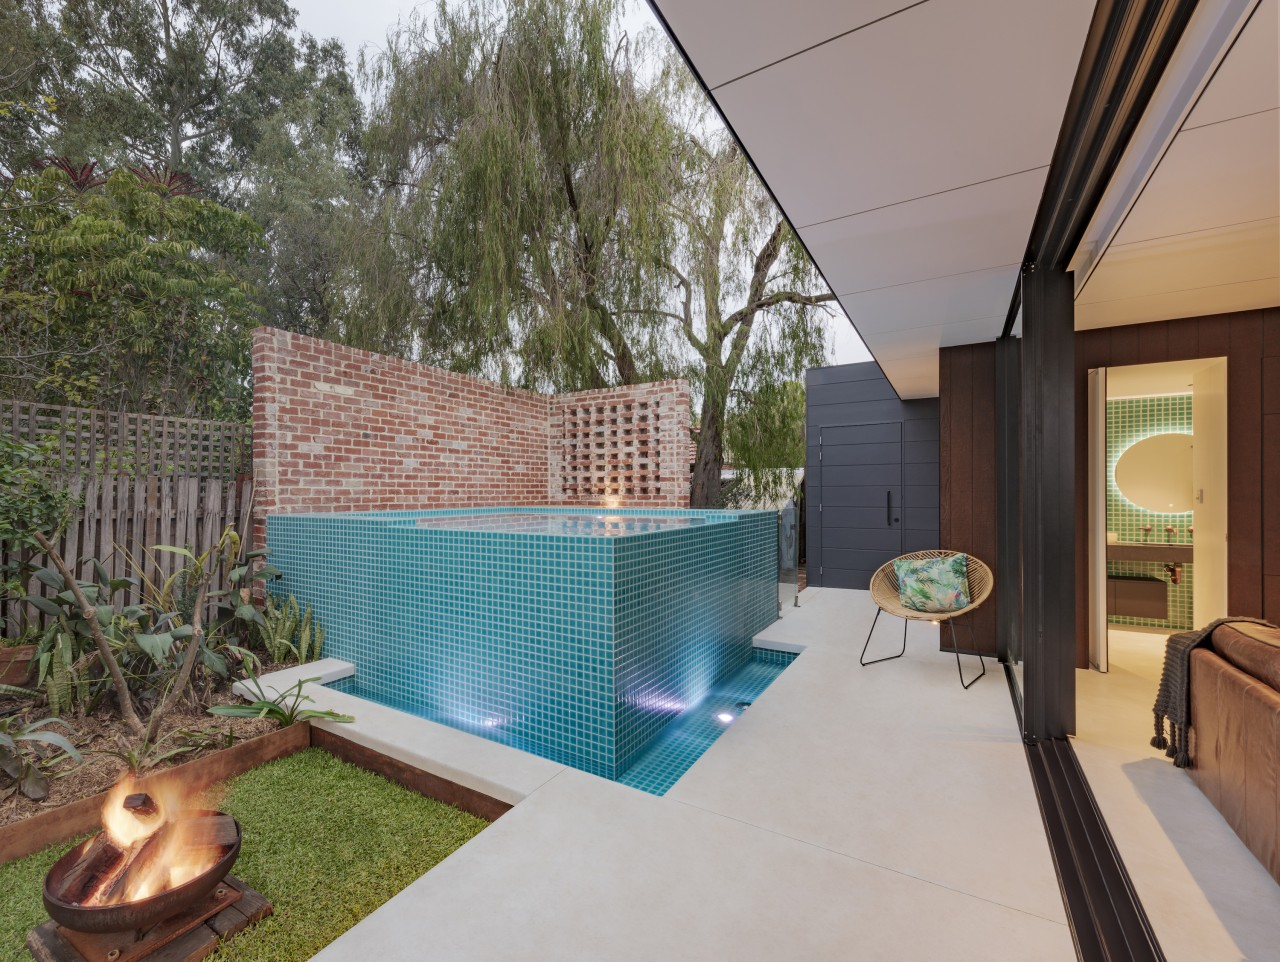 The new above-ground swimming pool has a waterfall